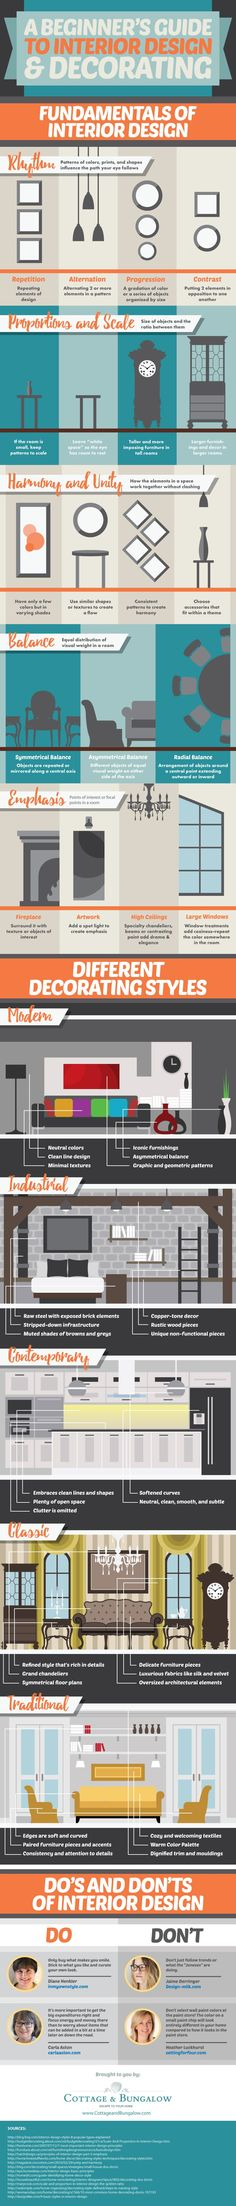 A Beginner's Guide to Interior Design and Decorating #Infographic